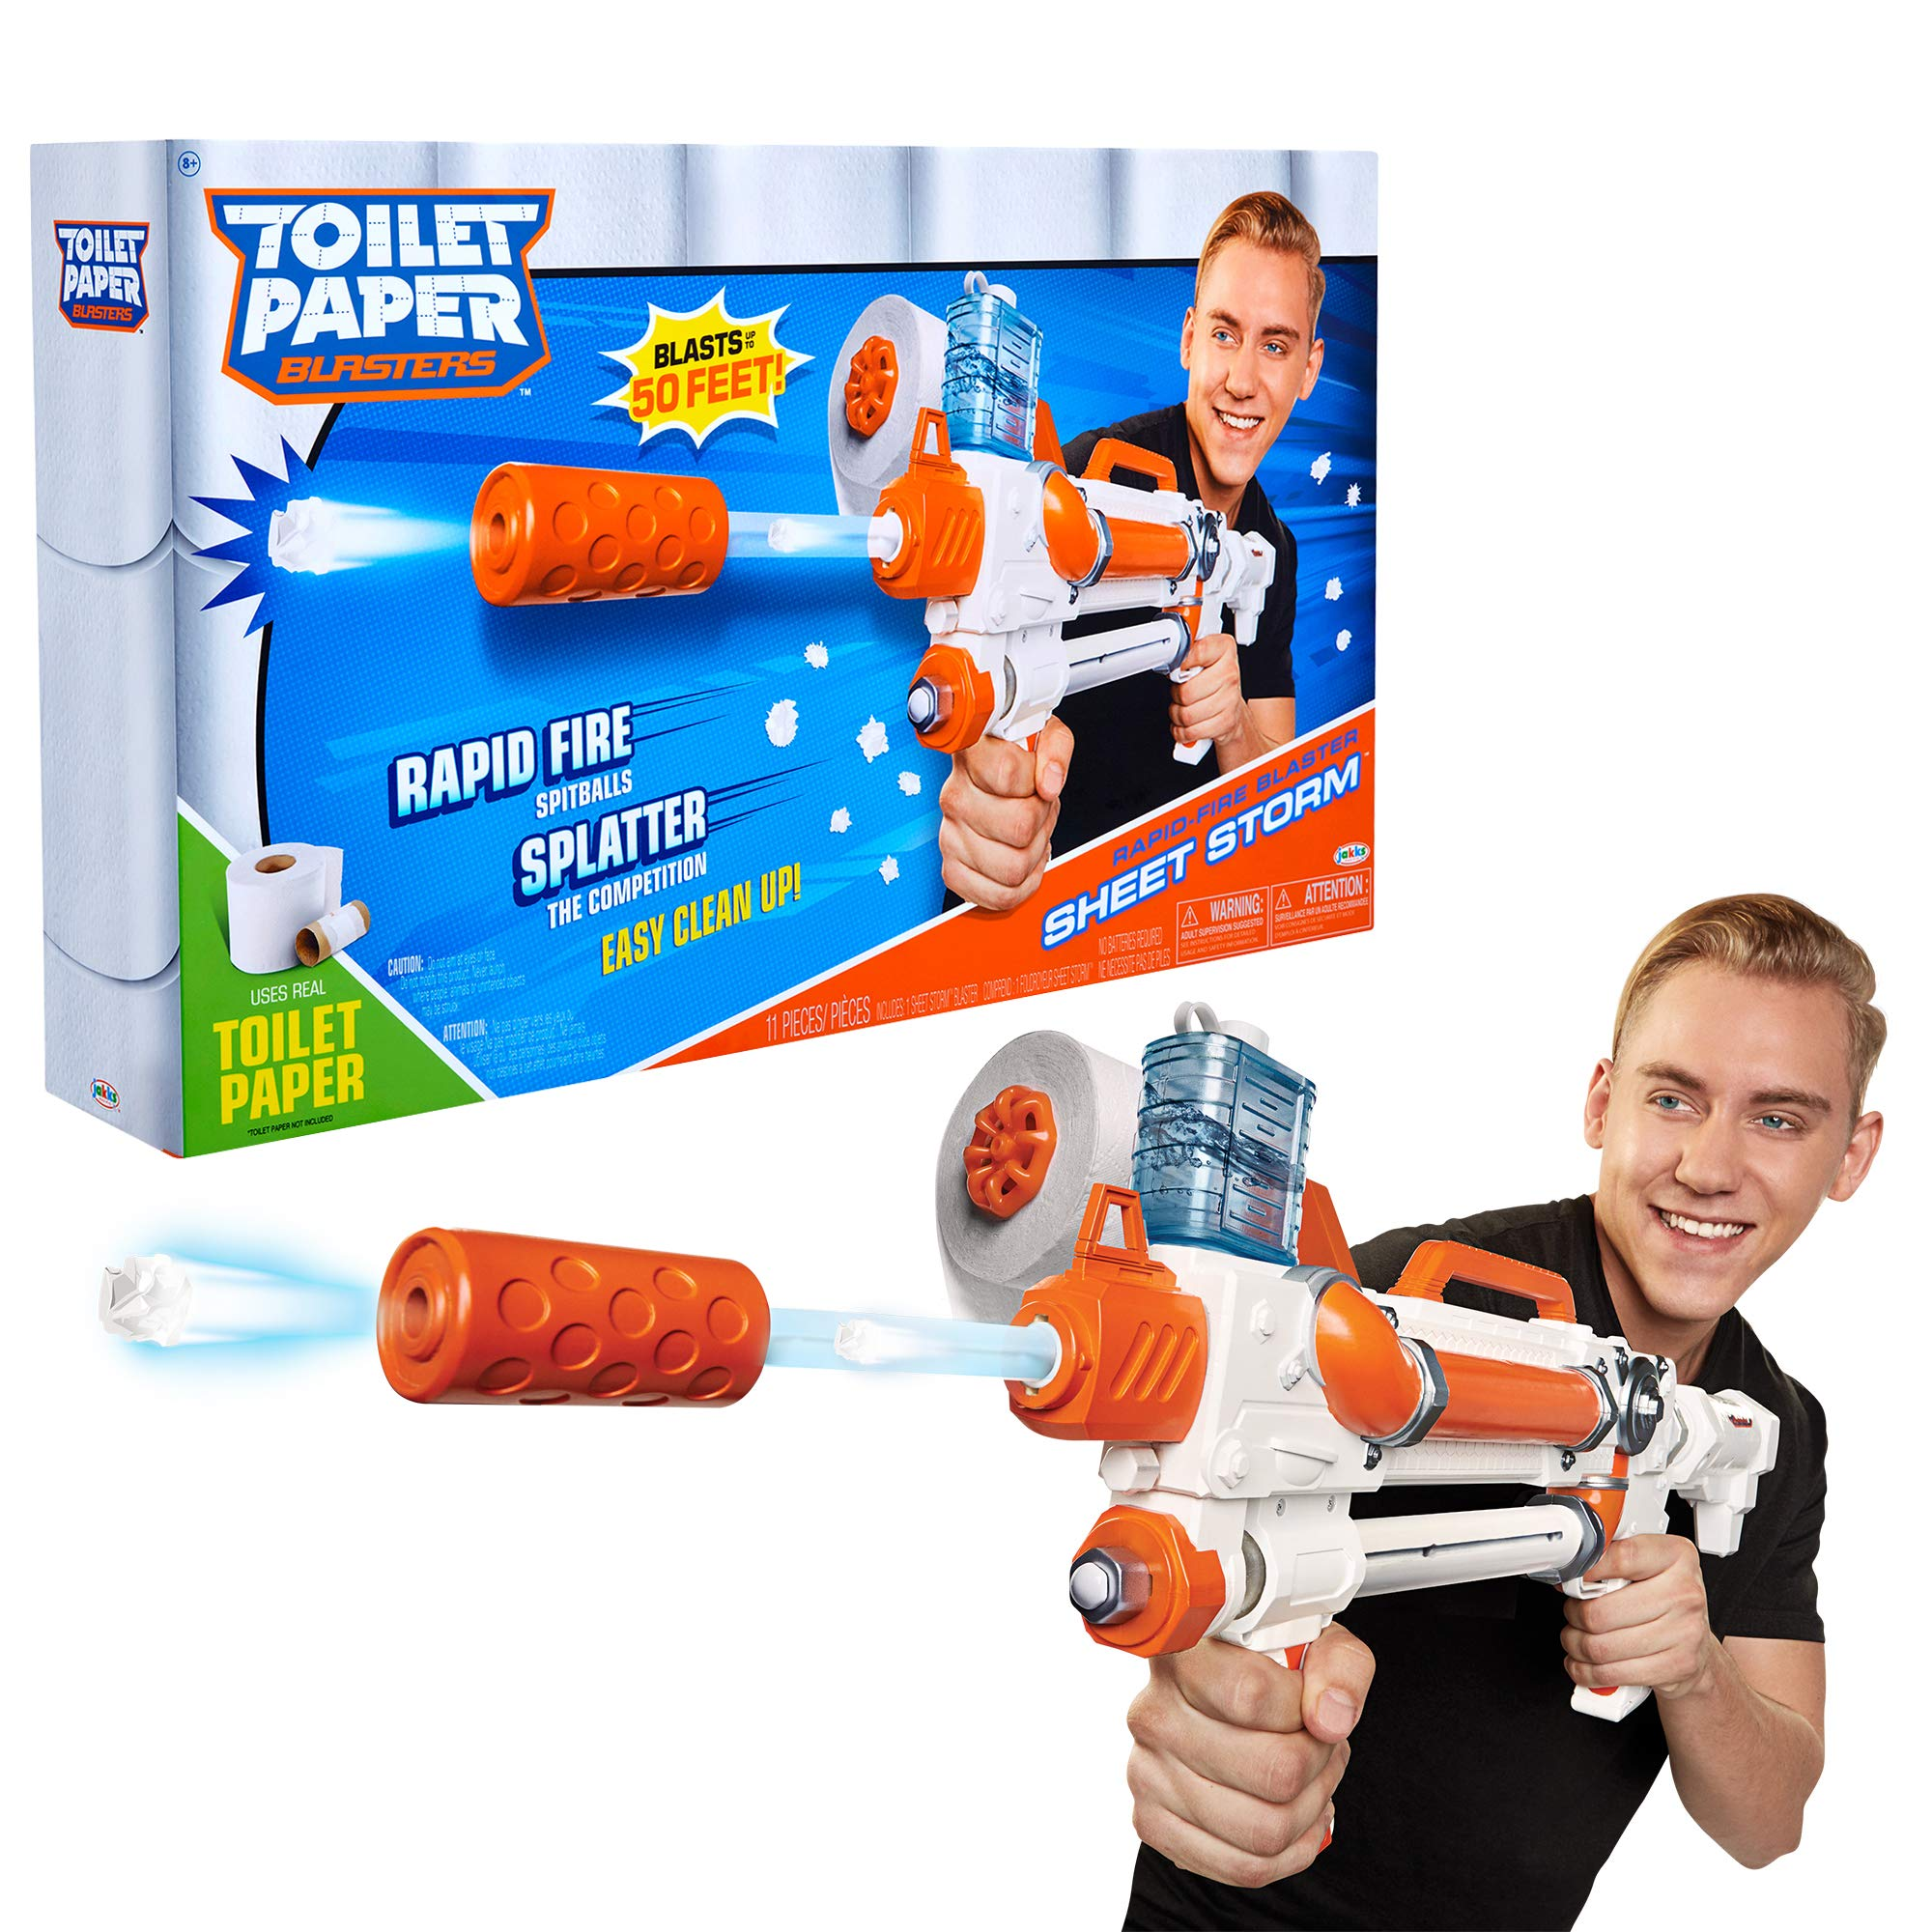 Toilet Paper Blasters Sheet Storm, Toy Blaster Shoots Rapid Fire TP Spitballs up to 50' - Uses Real Toilet Paper! Super Fun Gift for Kids, Teens, College Students, Dads, Adults - Outdoors & Indoors by TP Blaster